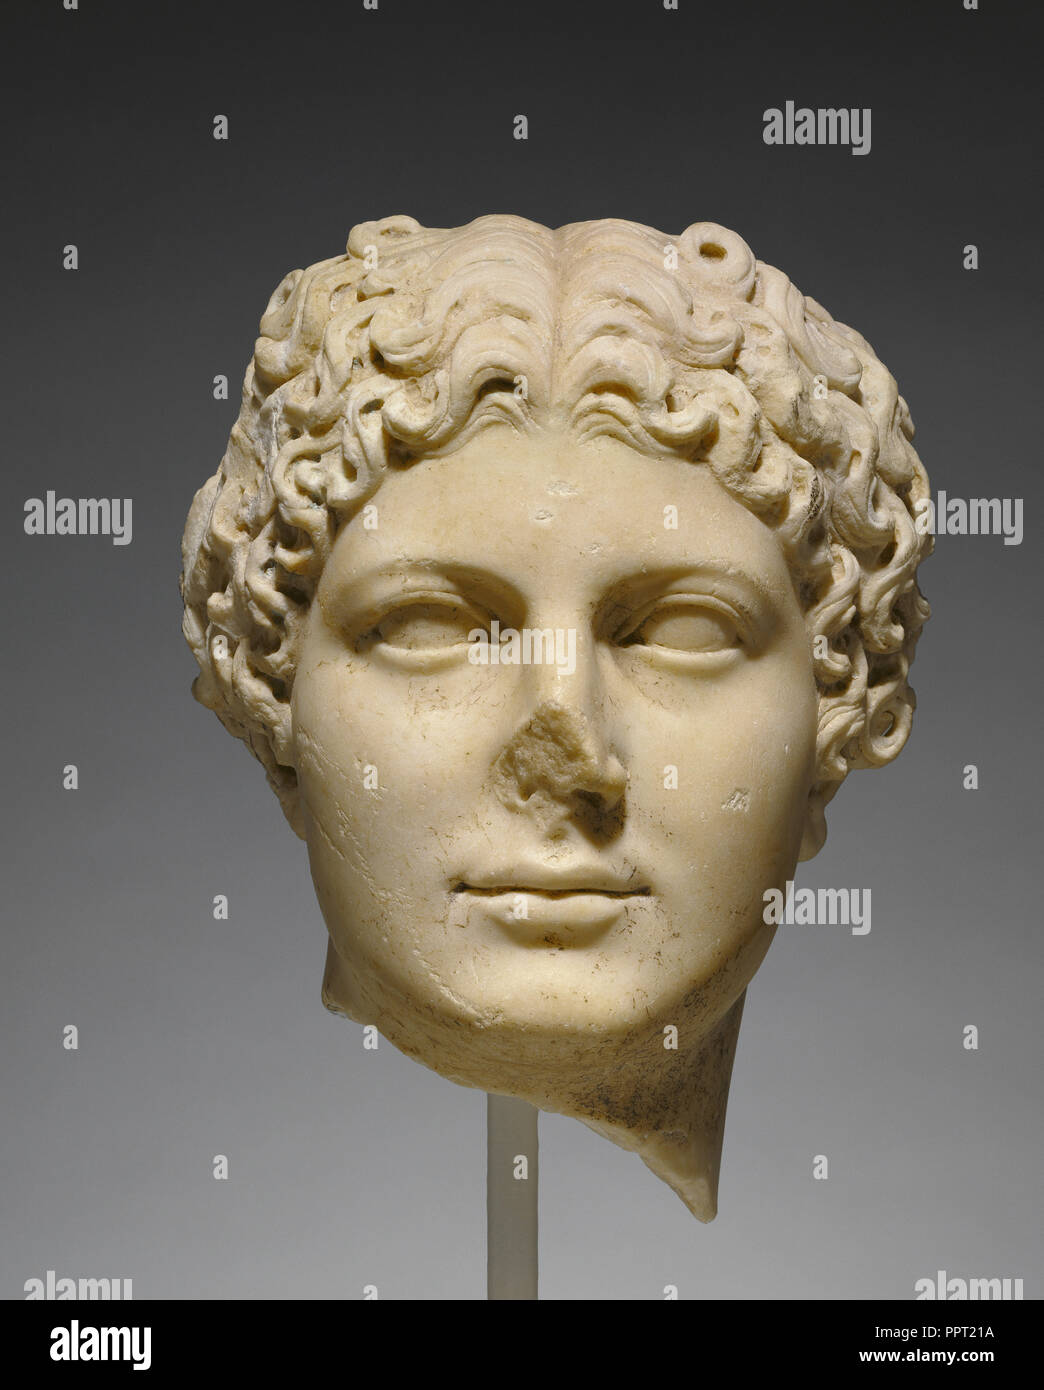 Head of Agrippina the Younger; Roman Empire; about 50 A.D; Marble; 32 × 27 × 28 cm, 12 5,8 × 10 5,8 × 11 in - Stock Image